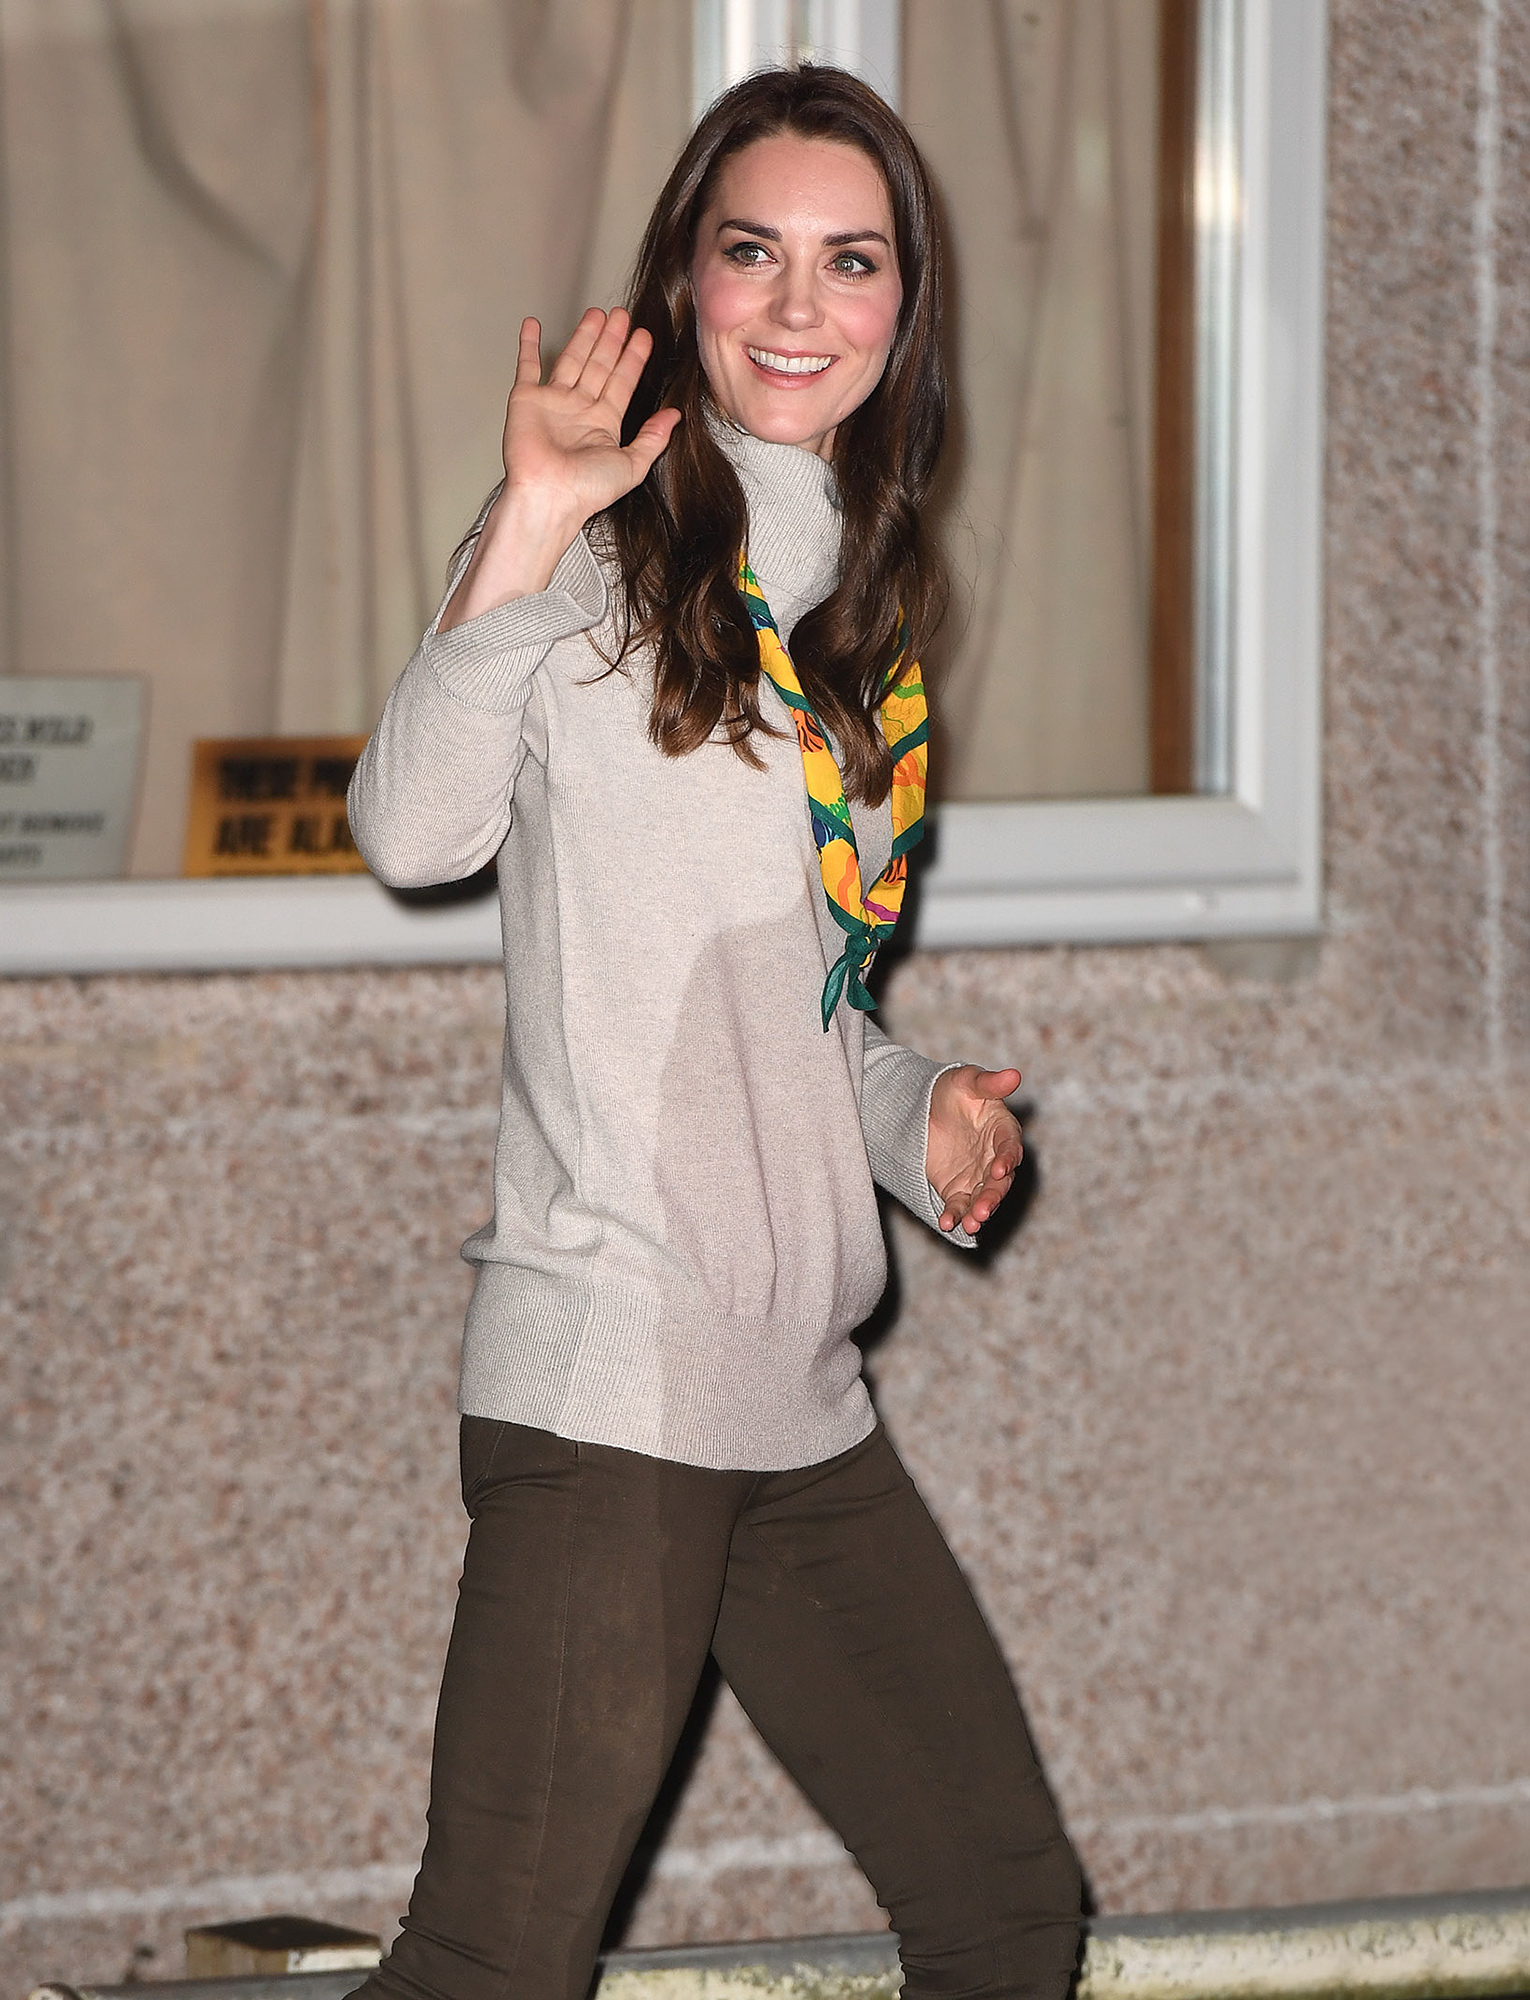 The Duchess of Cambridge attends a special Cub Scout Pack meeting